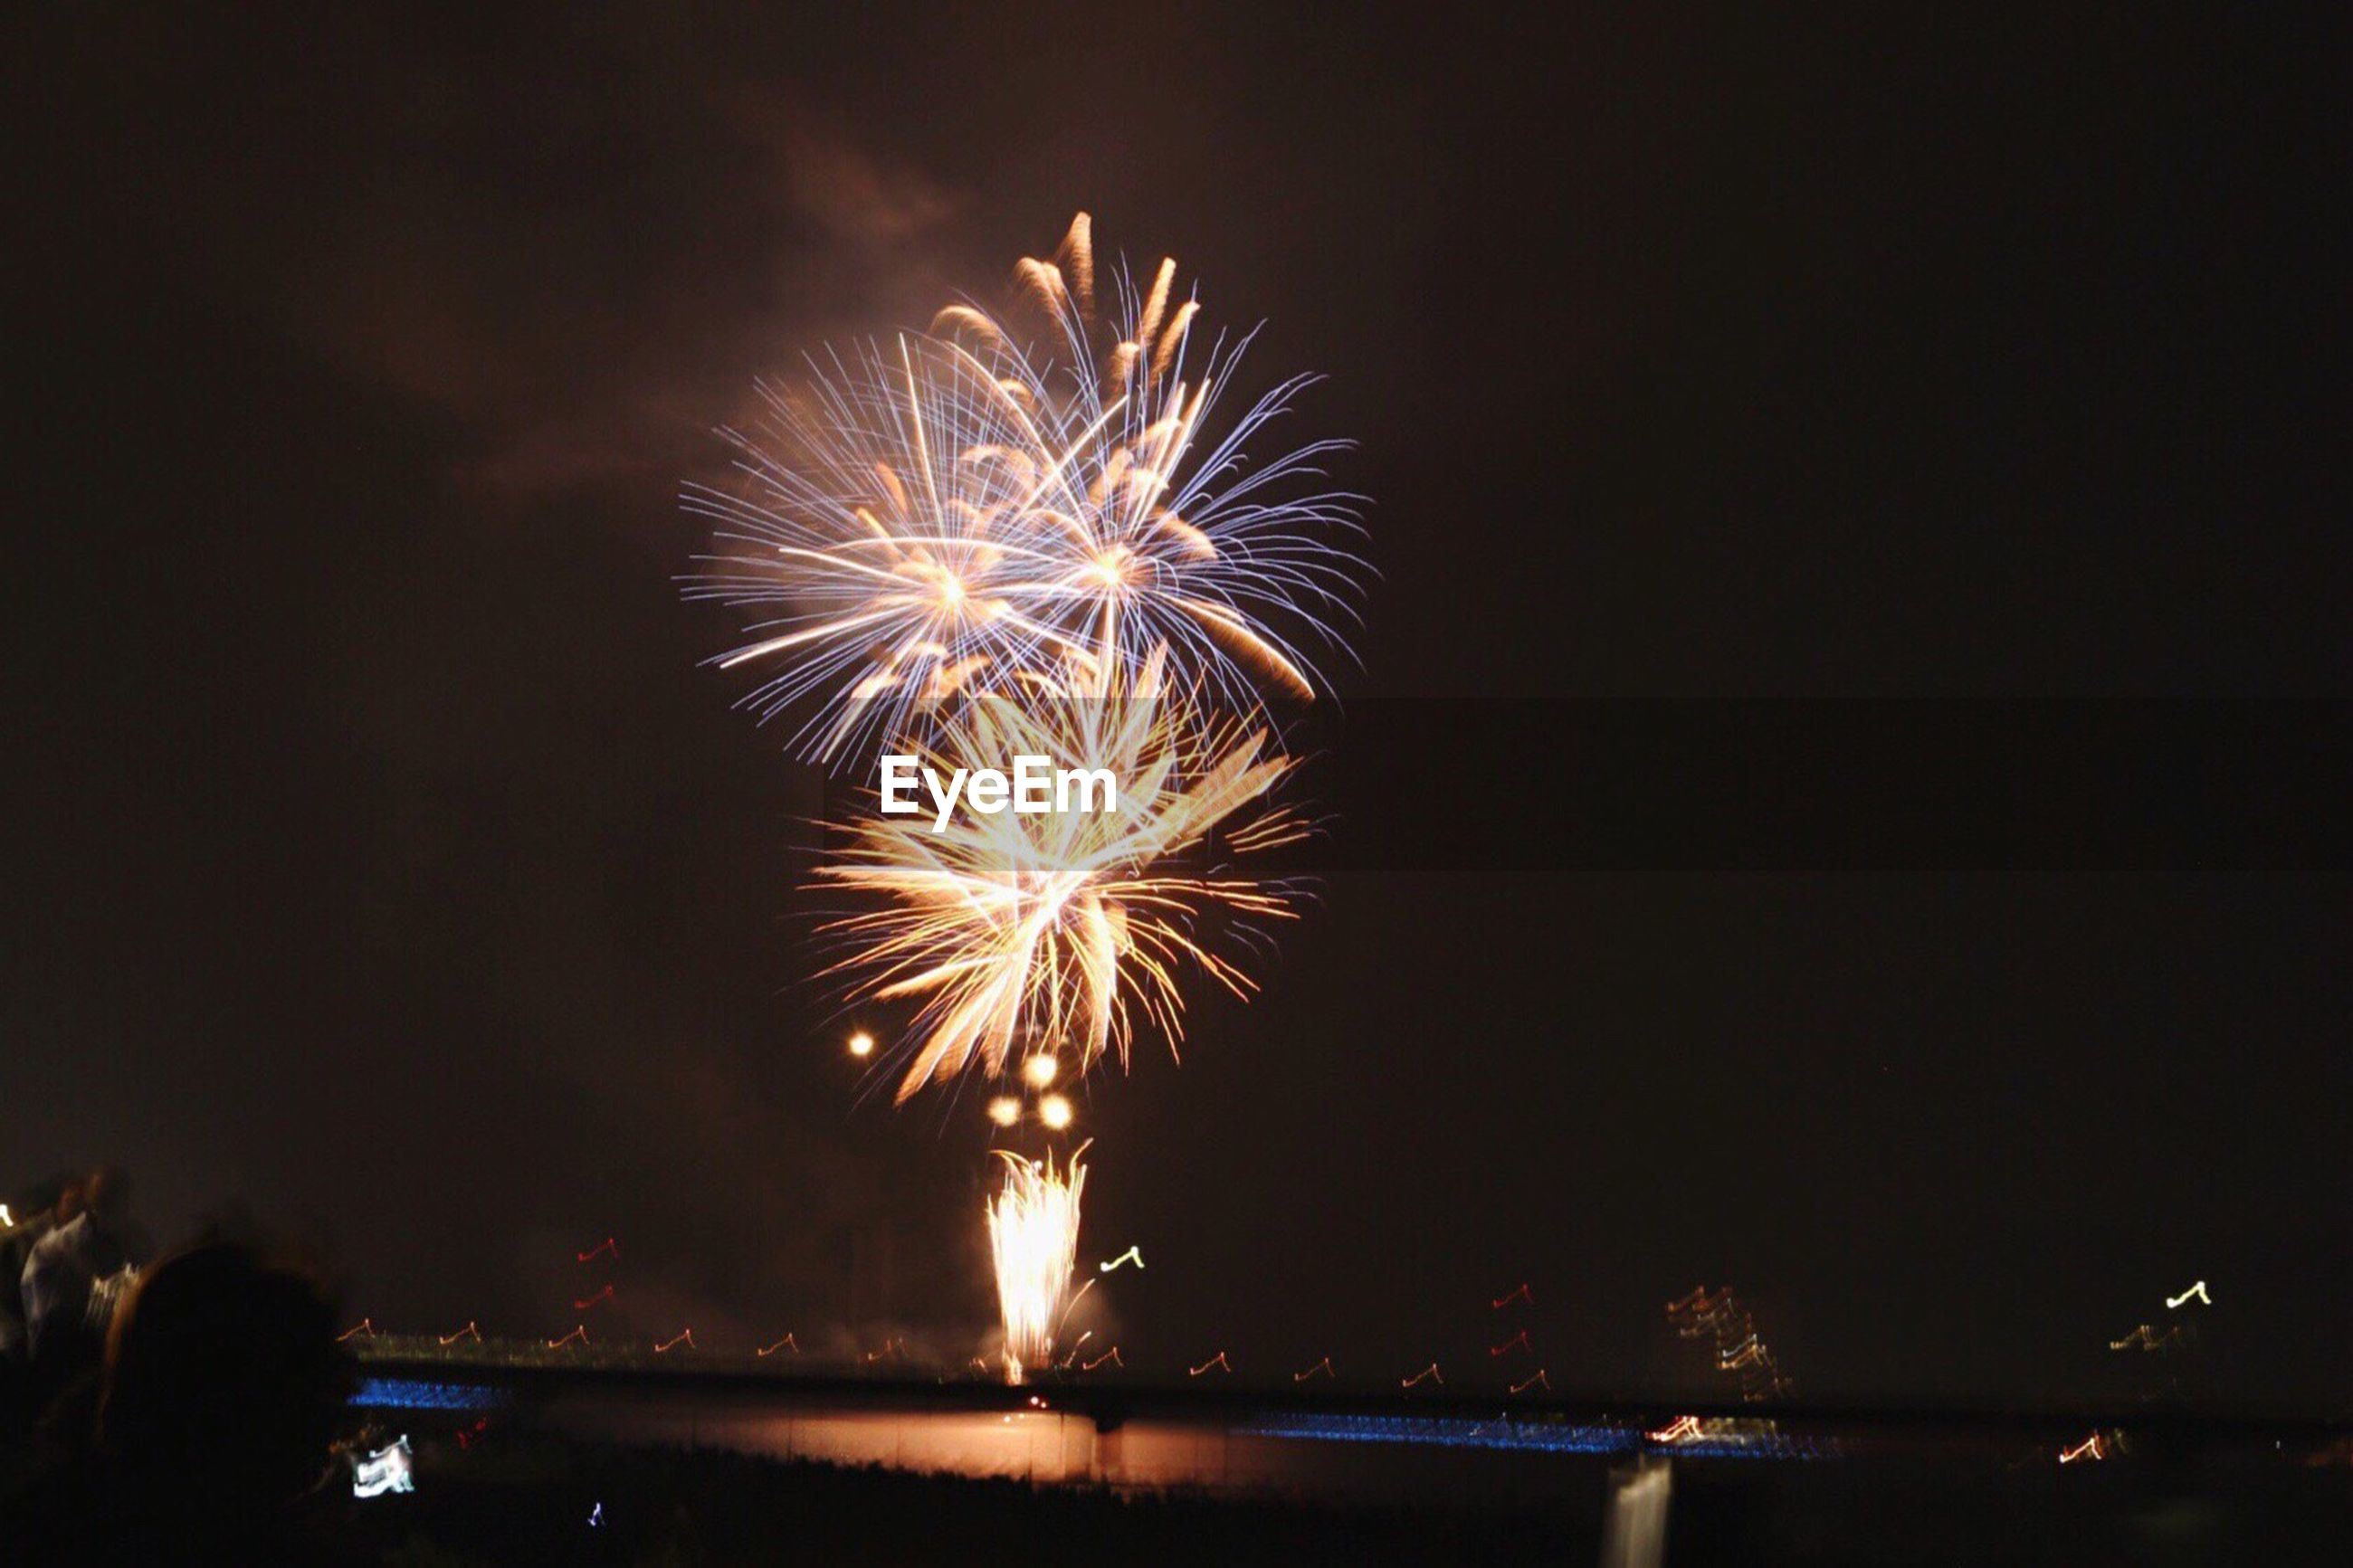 water, night, firework display, celebration, motion, illuminated, firework - man made object, exploding, long exposure, glowing, reflection, sparks, river, sky, entertainment, waterfront, scenics, outdoors, tourism, vacations, sea, event, multi colored